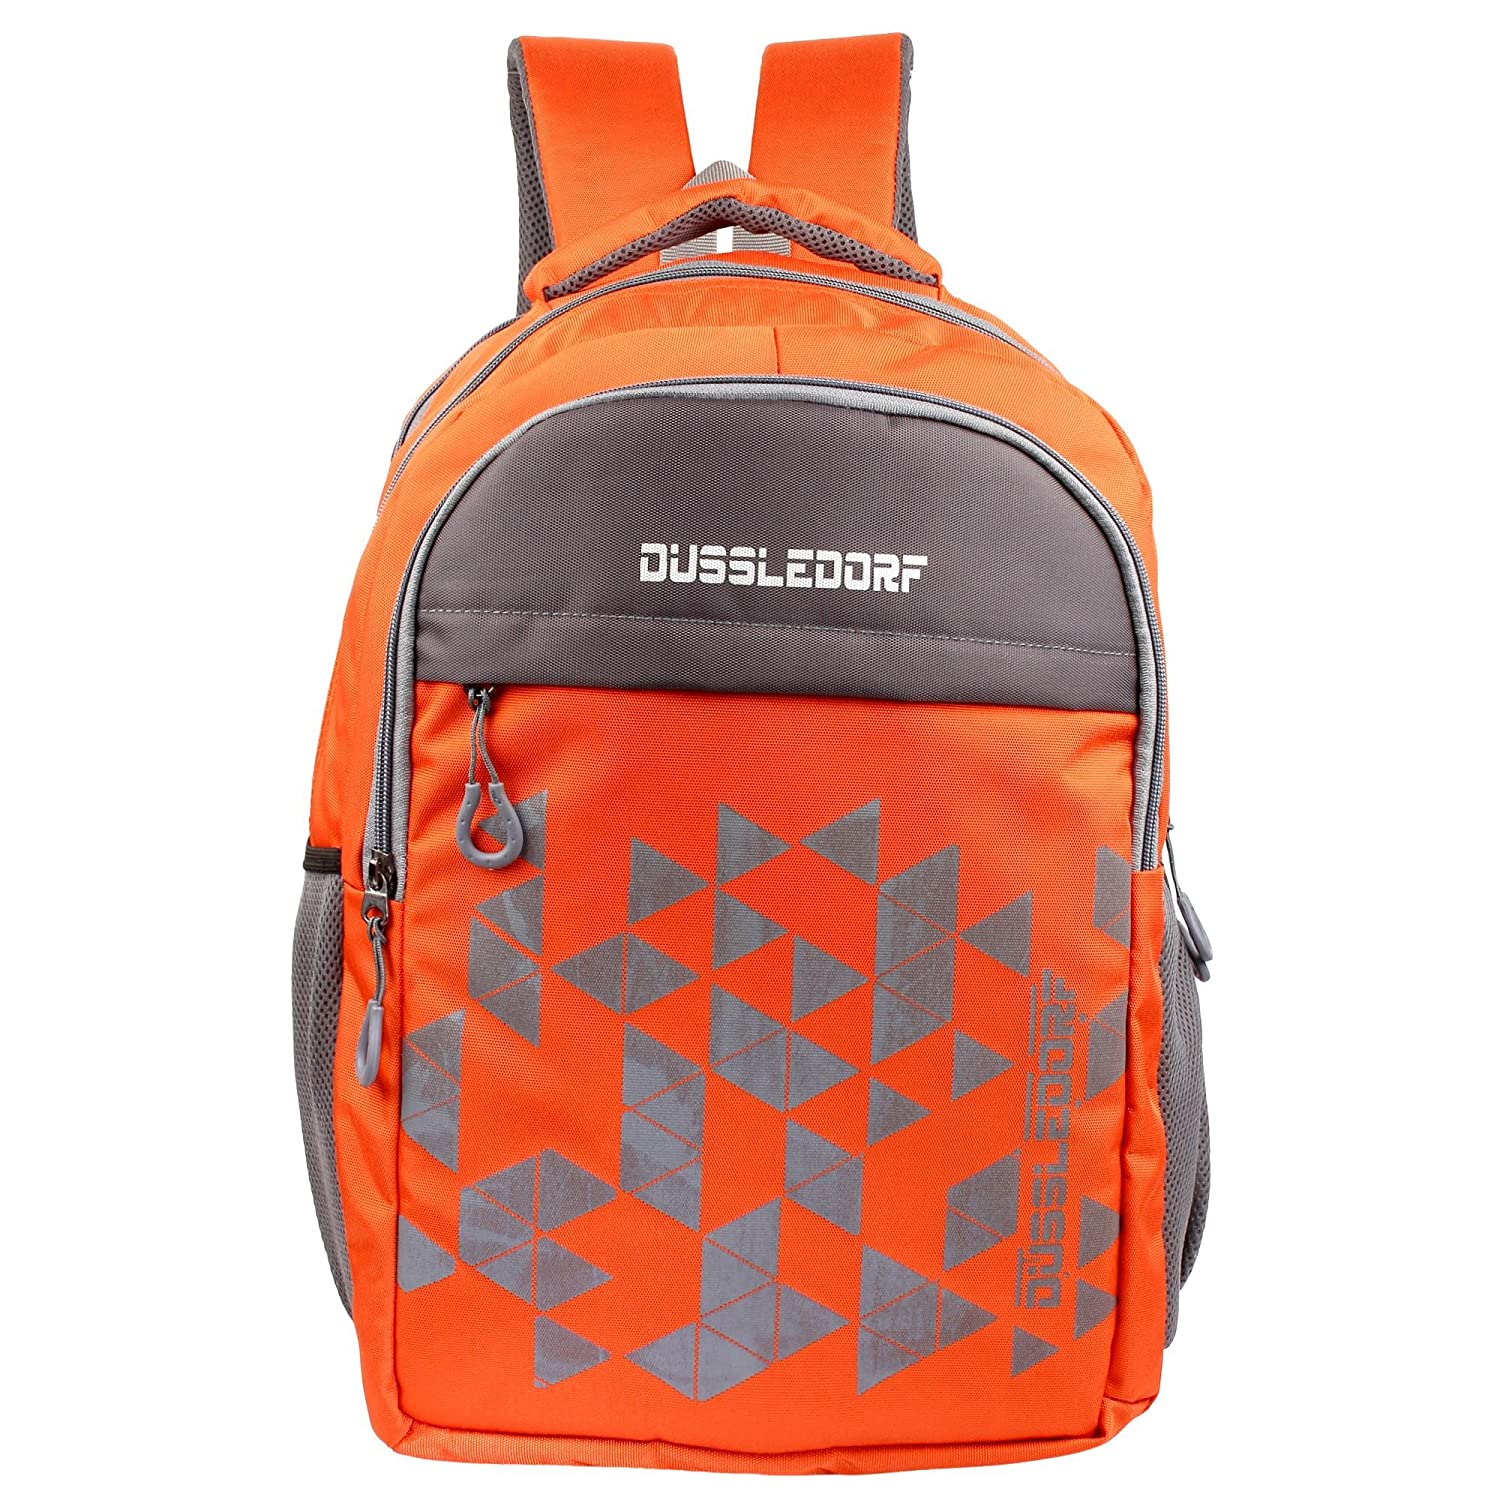 Dussledorf Polyester 25 Liters Orange and Grey Laptop with 2 Compartment Backpack